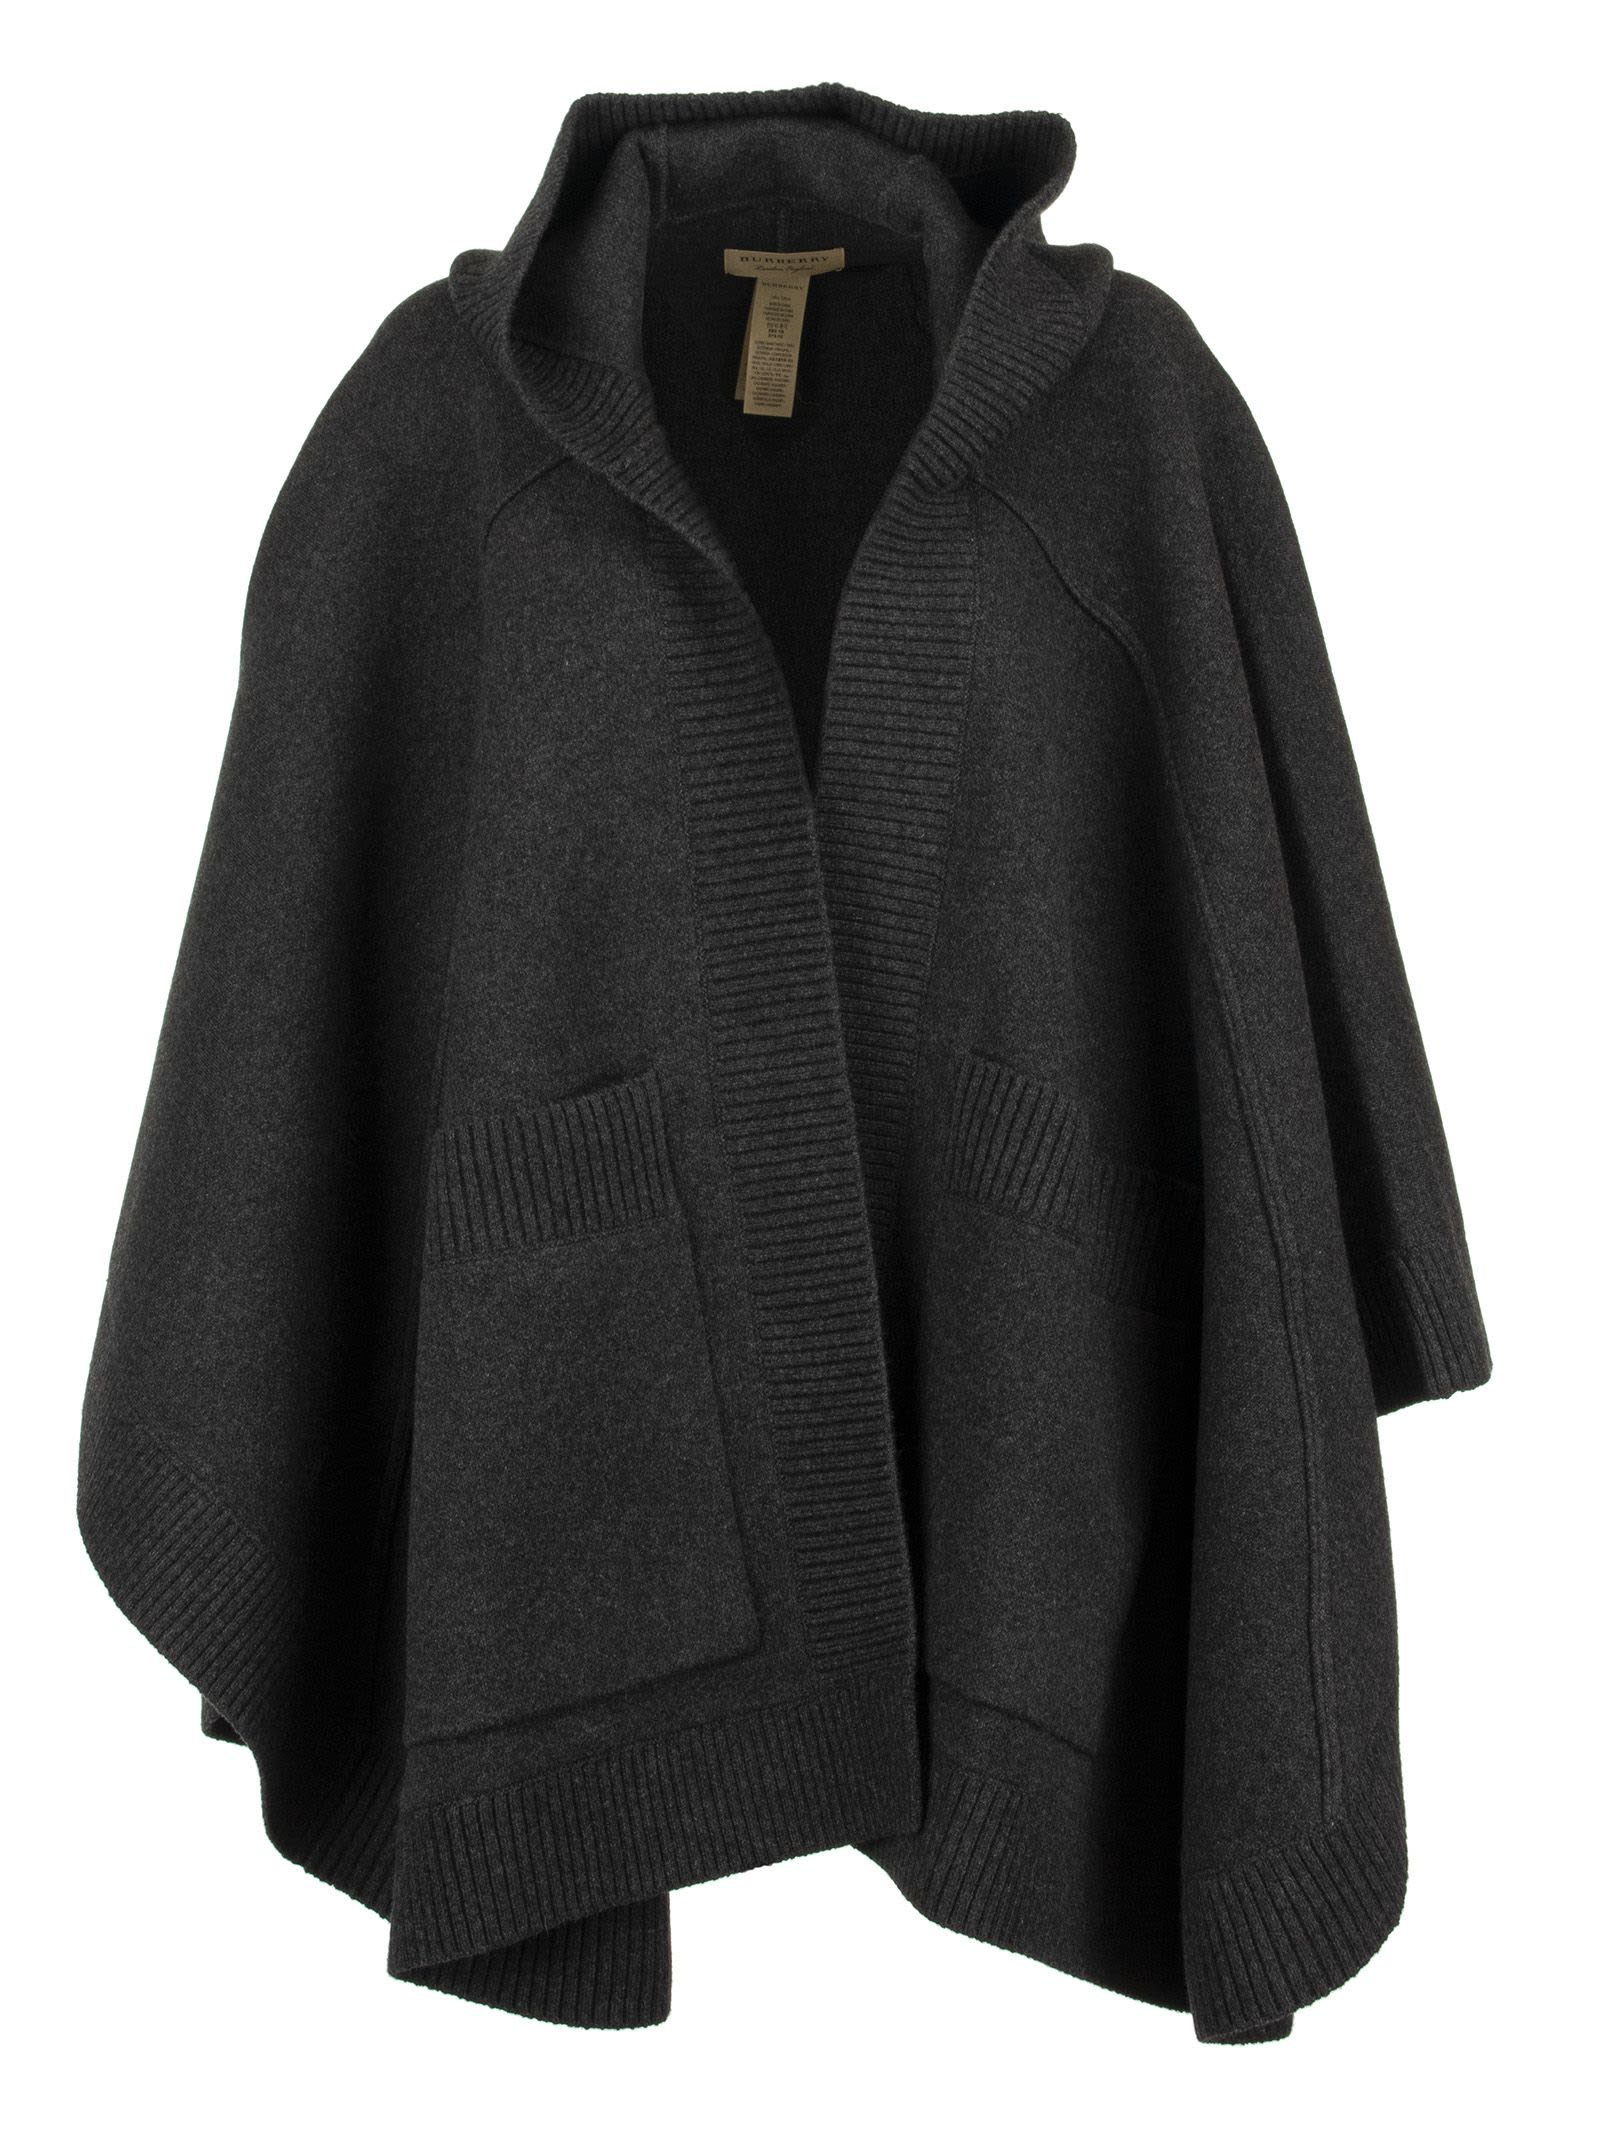 Burberry Jacquard Hooded Cape